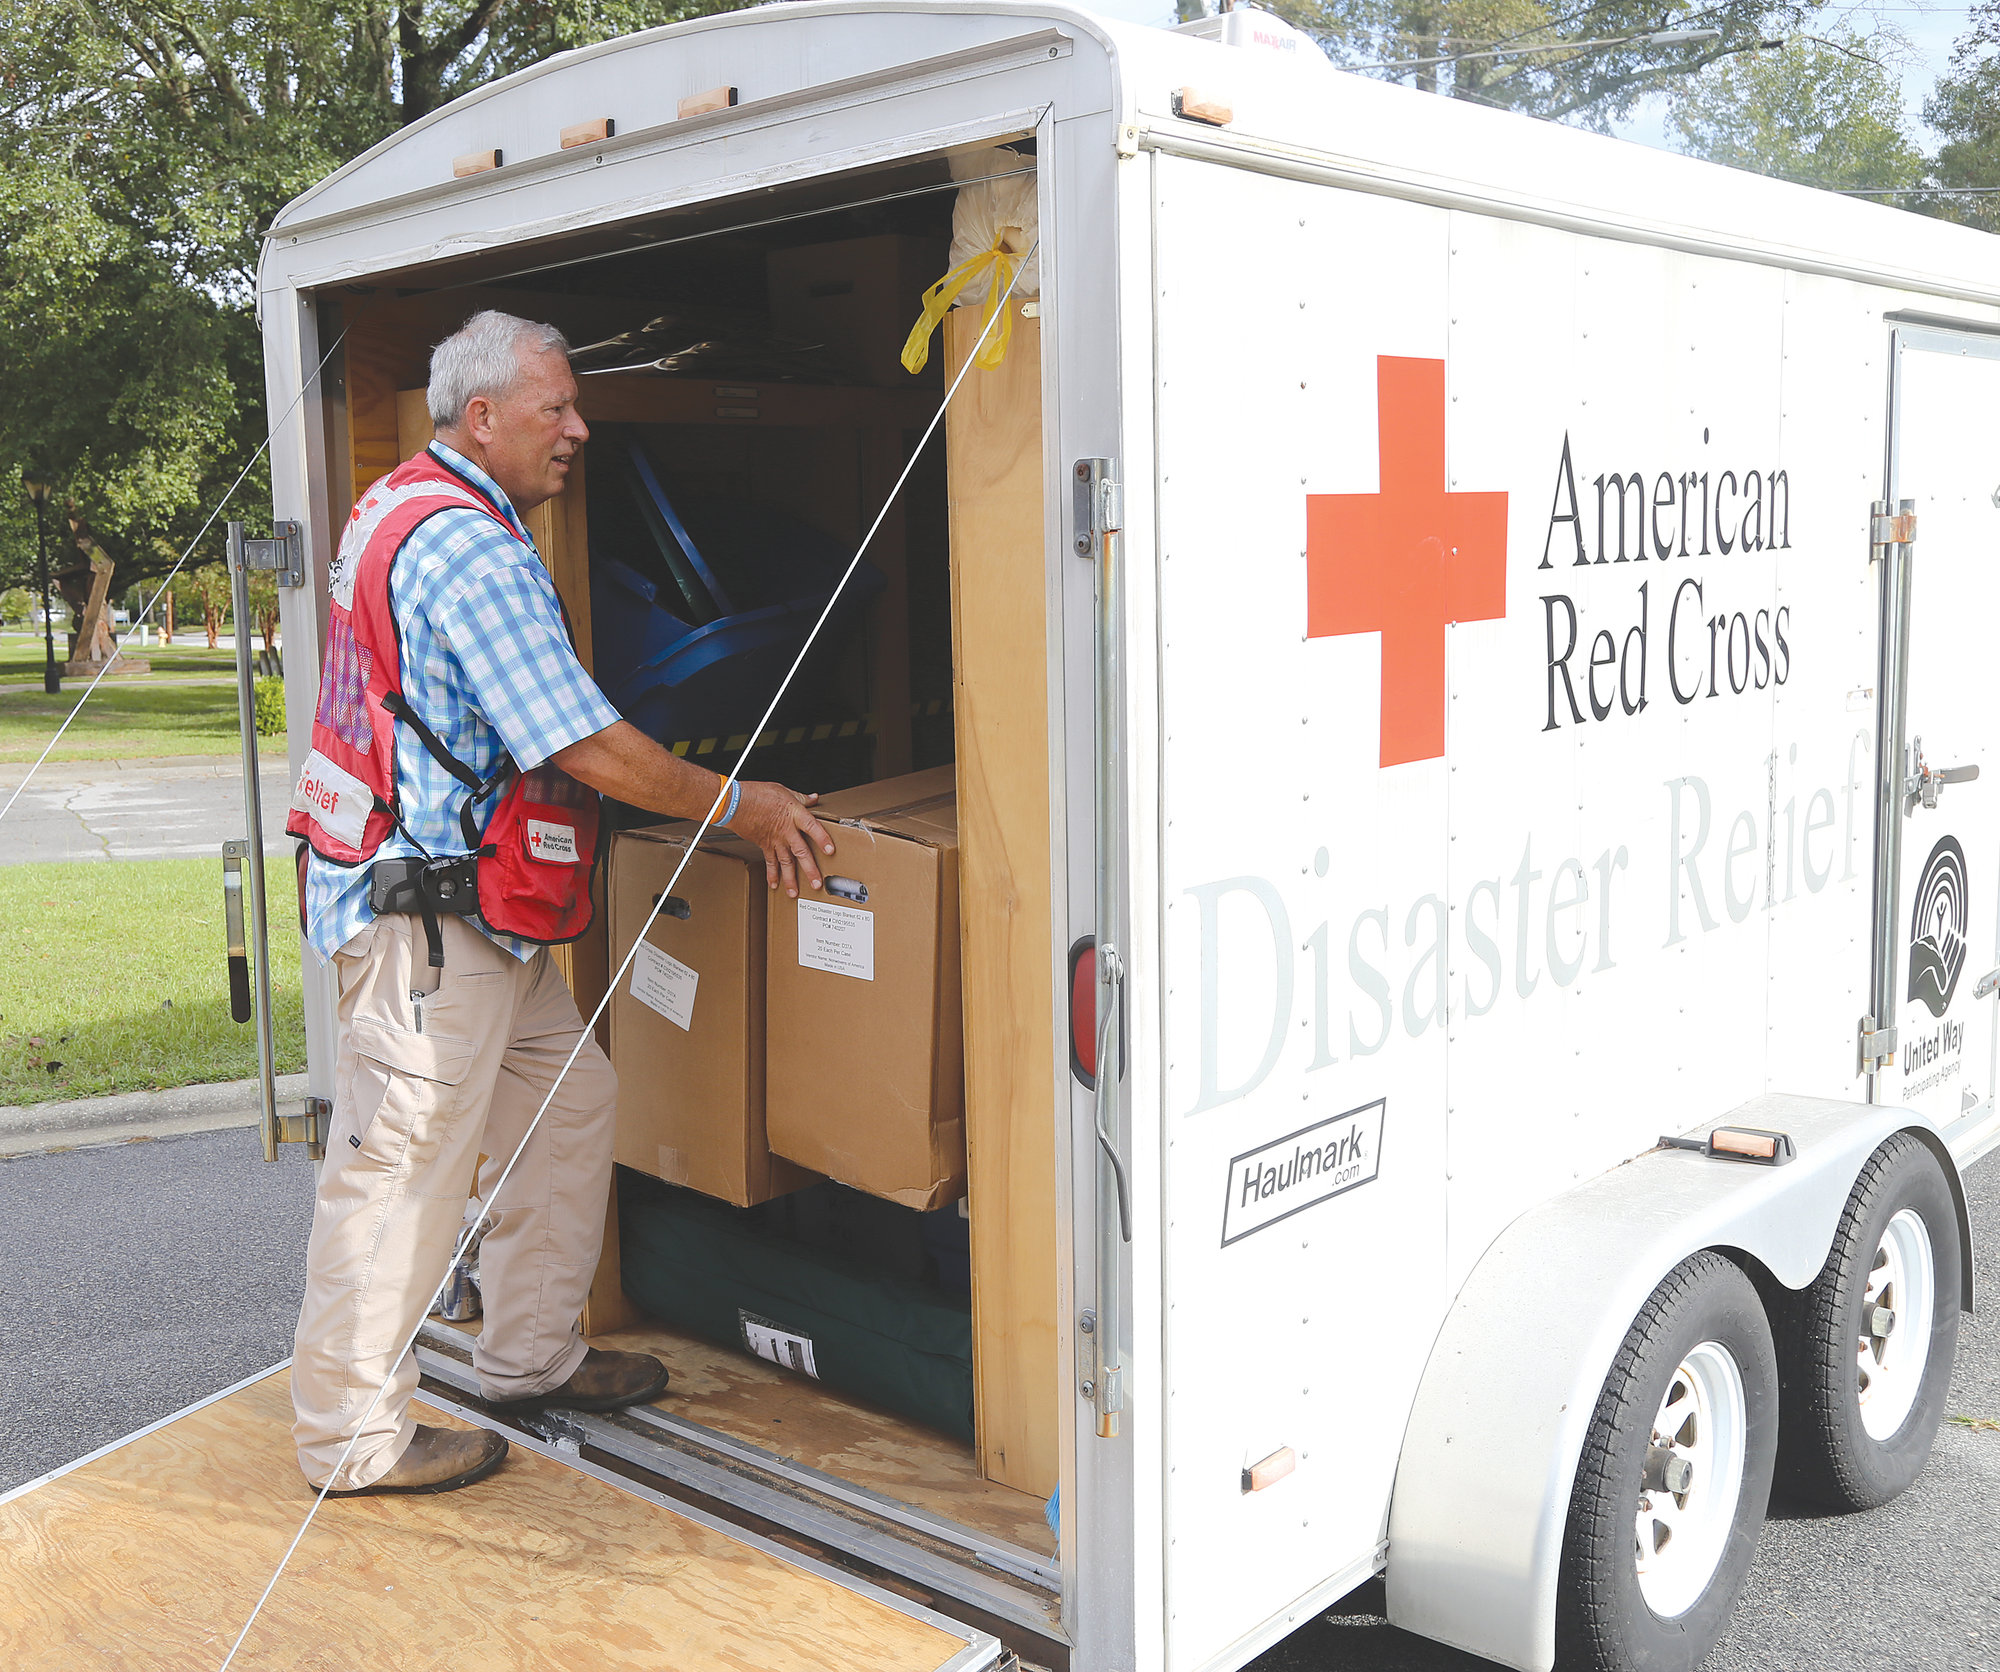 Steve Shumake, disaster action team coordinator for the area American Red Cross region, sorts through supplies in a relief trailer Wednesday outside the Sumter County Recreation Center, 155 Haynsworth St., which is open as a shelter.